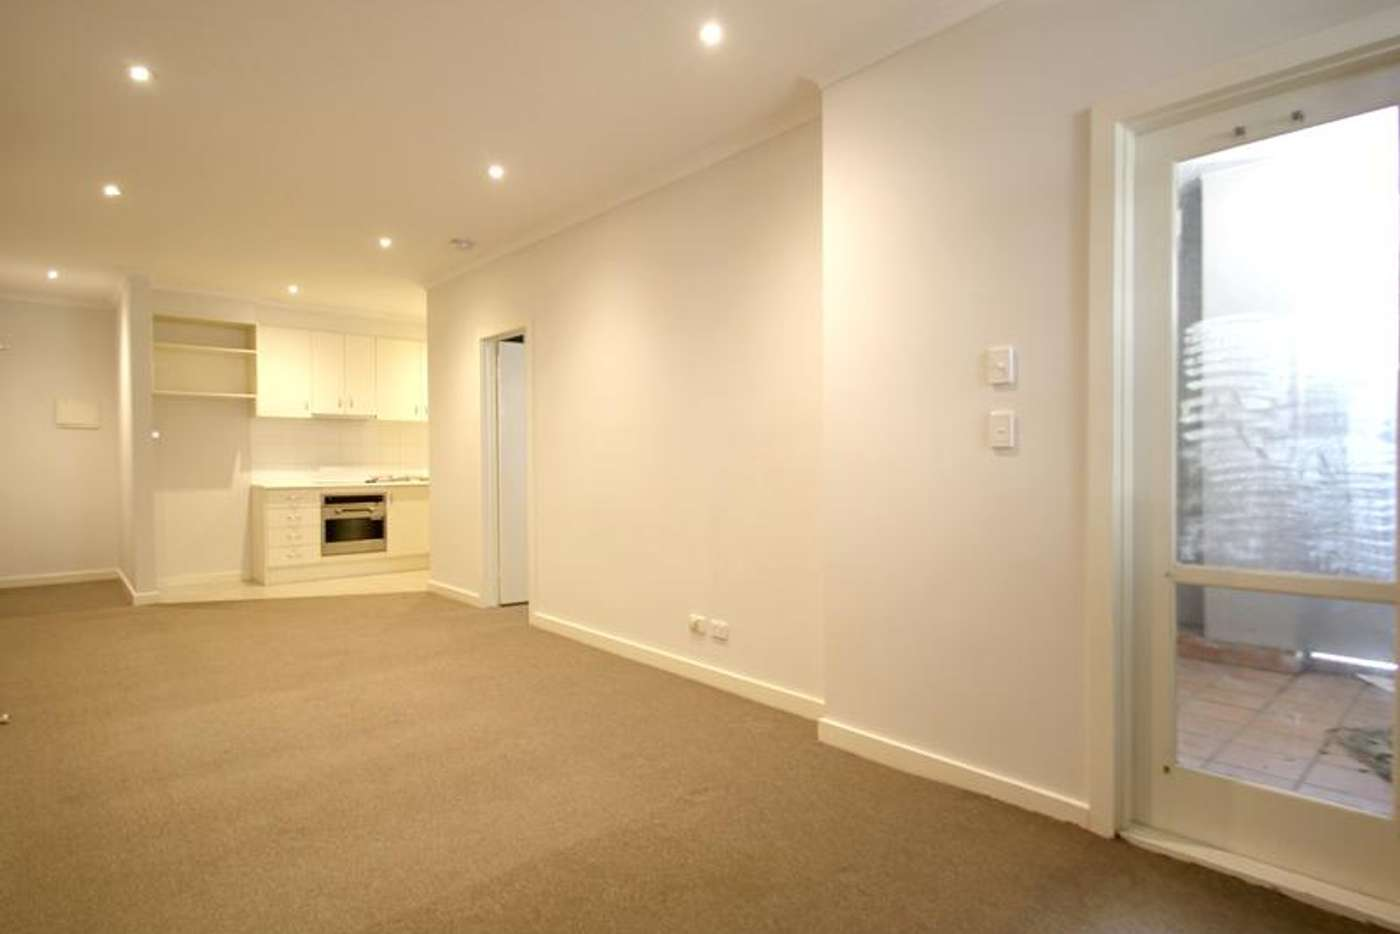 Main view of Homely apartment listing, 112/445 Royal Parade, Parkville VIC 3052